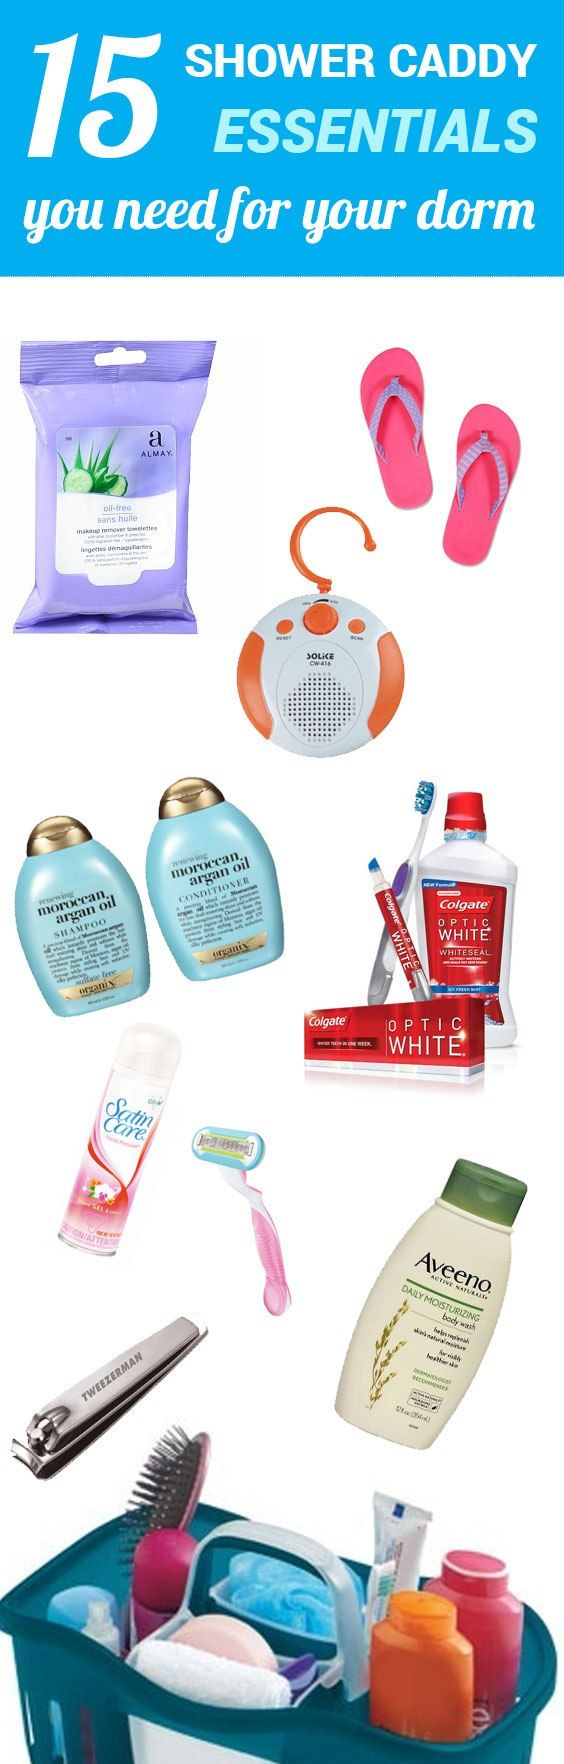 15 Shower Caddy Essentials You Need For Your Dorm – SOCIETY19